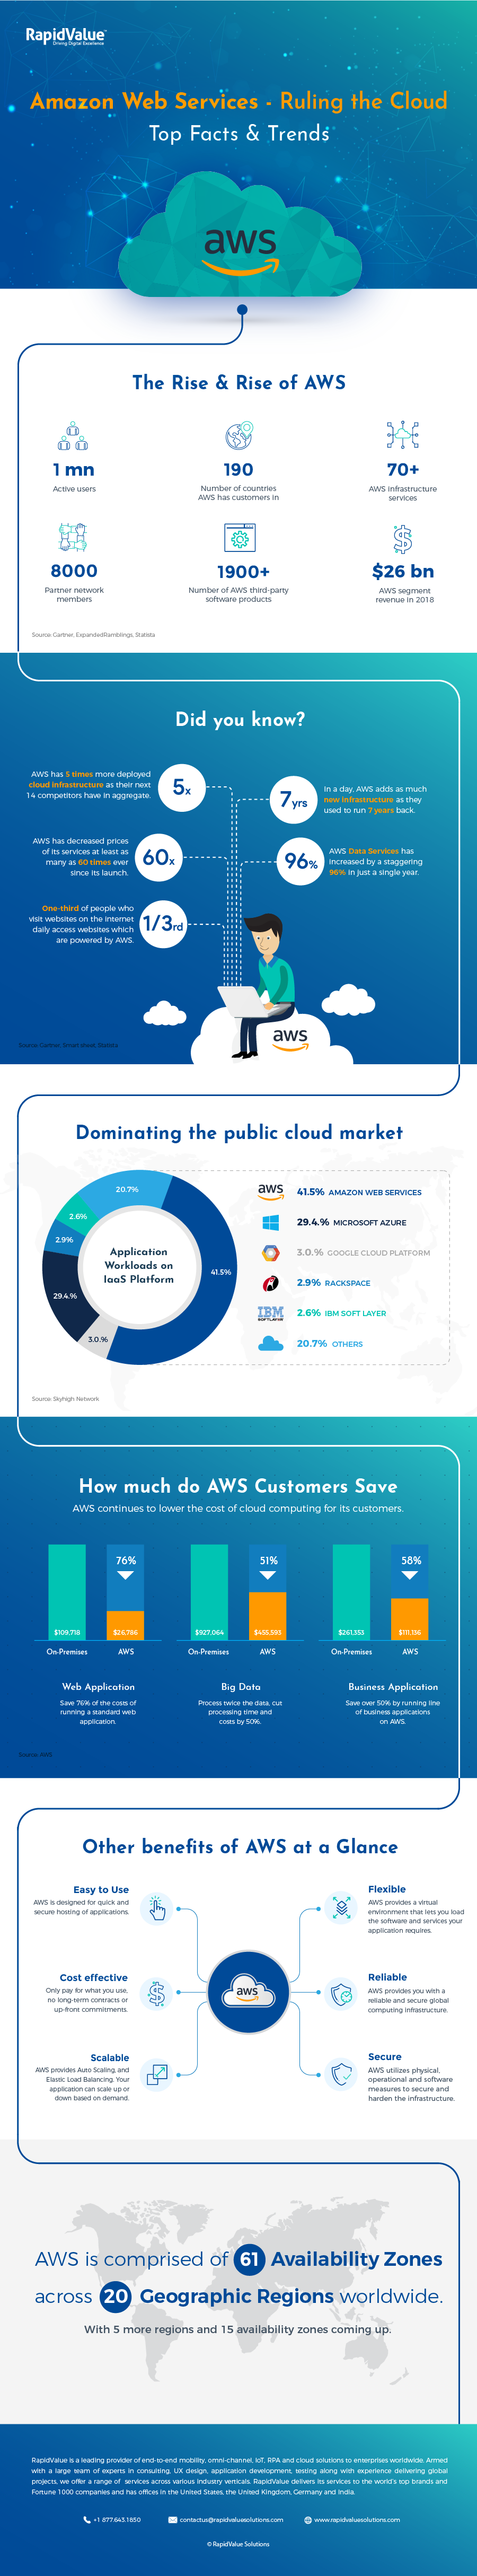 Cloud Control–Web Services for Amazon #infographic